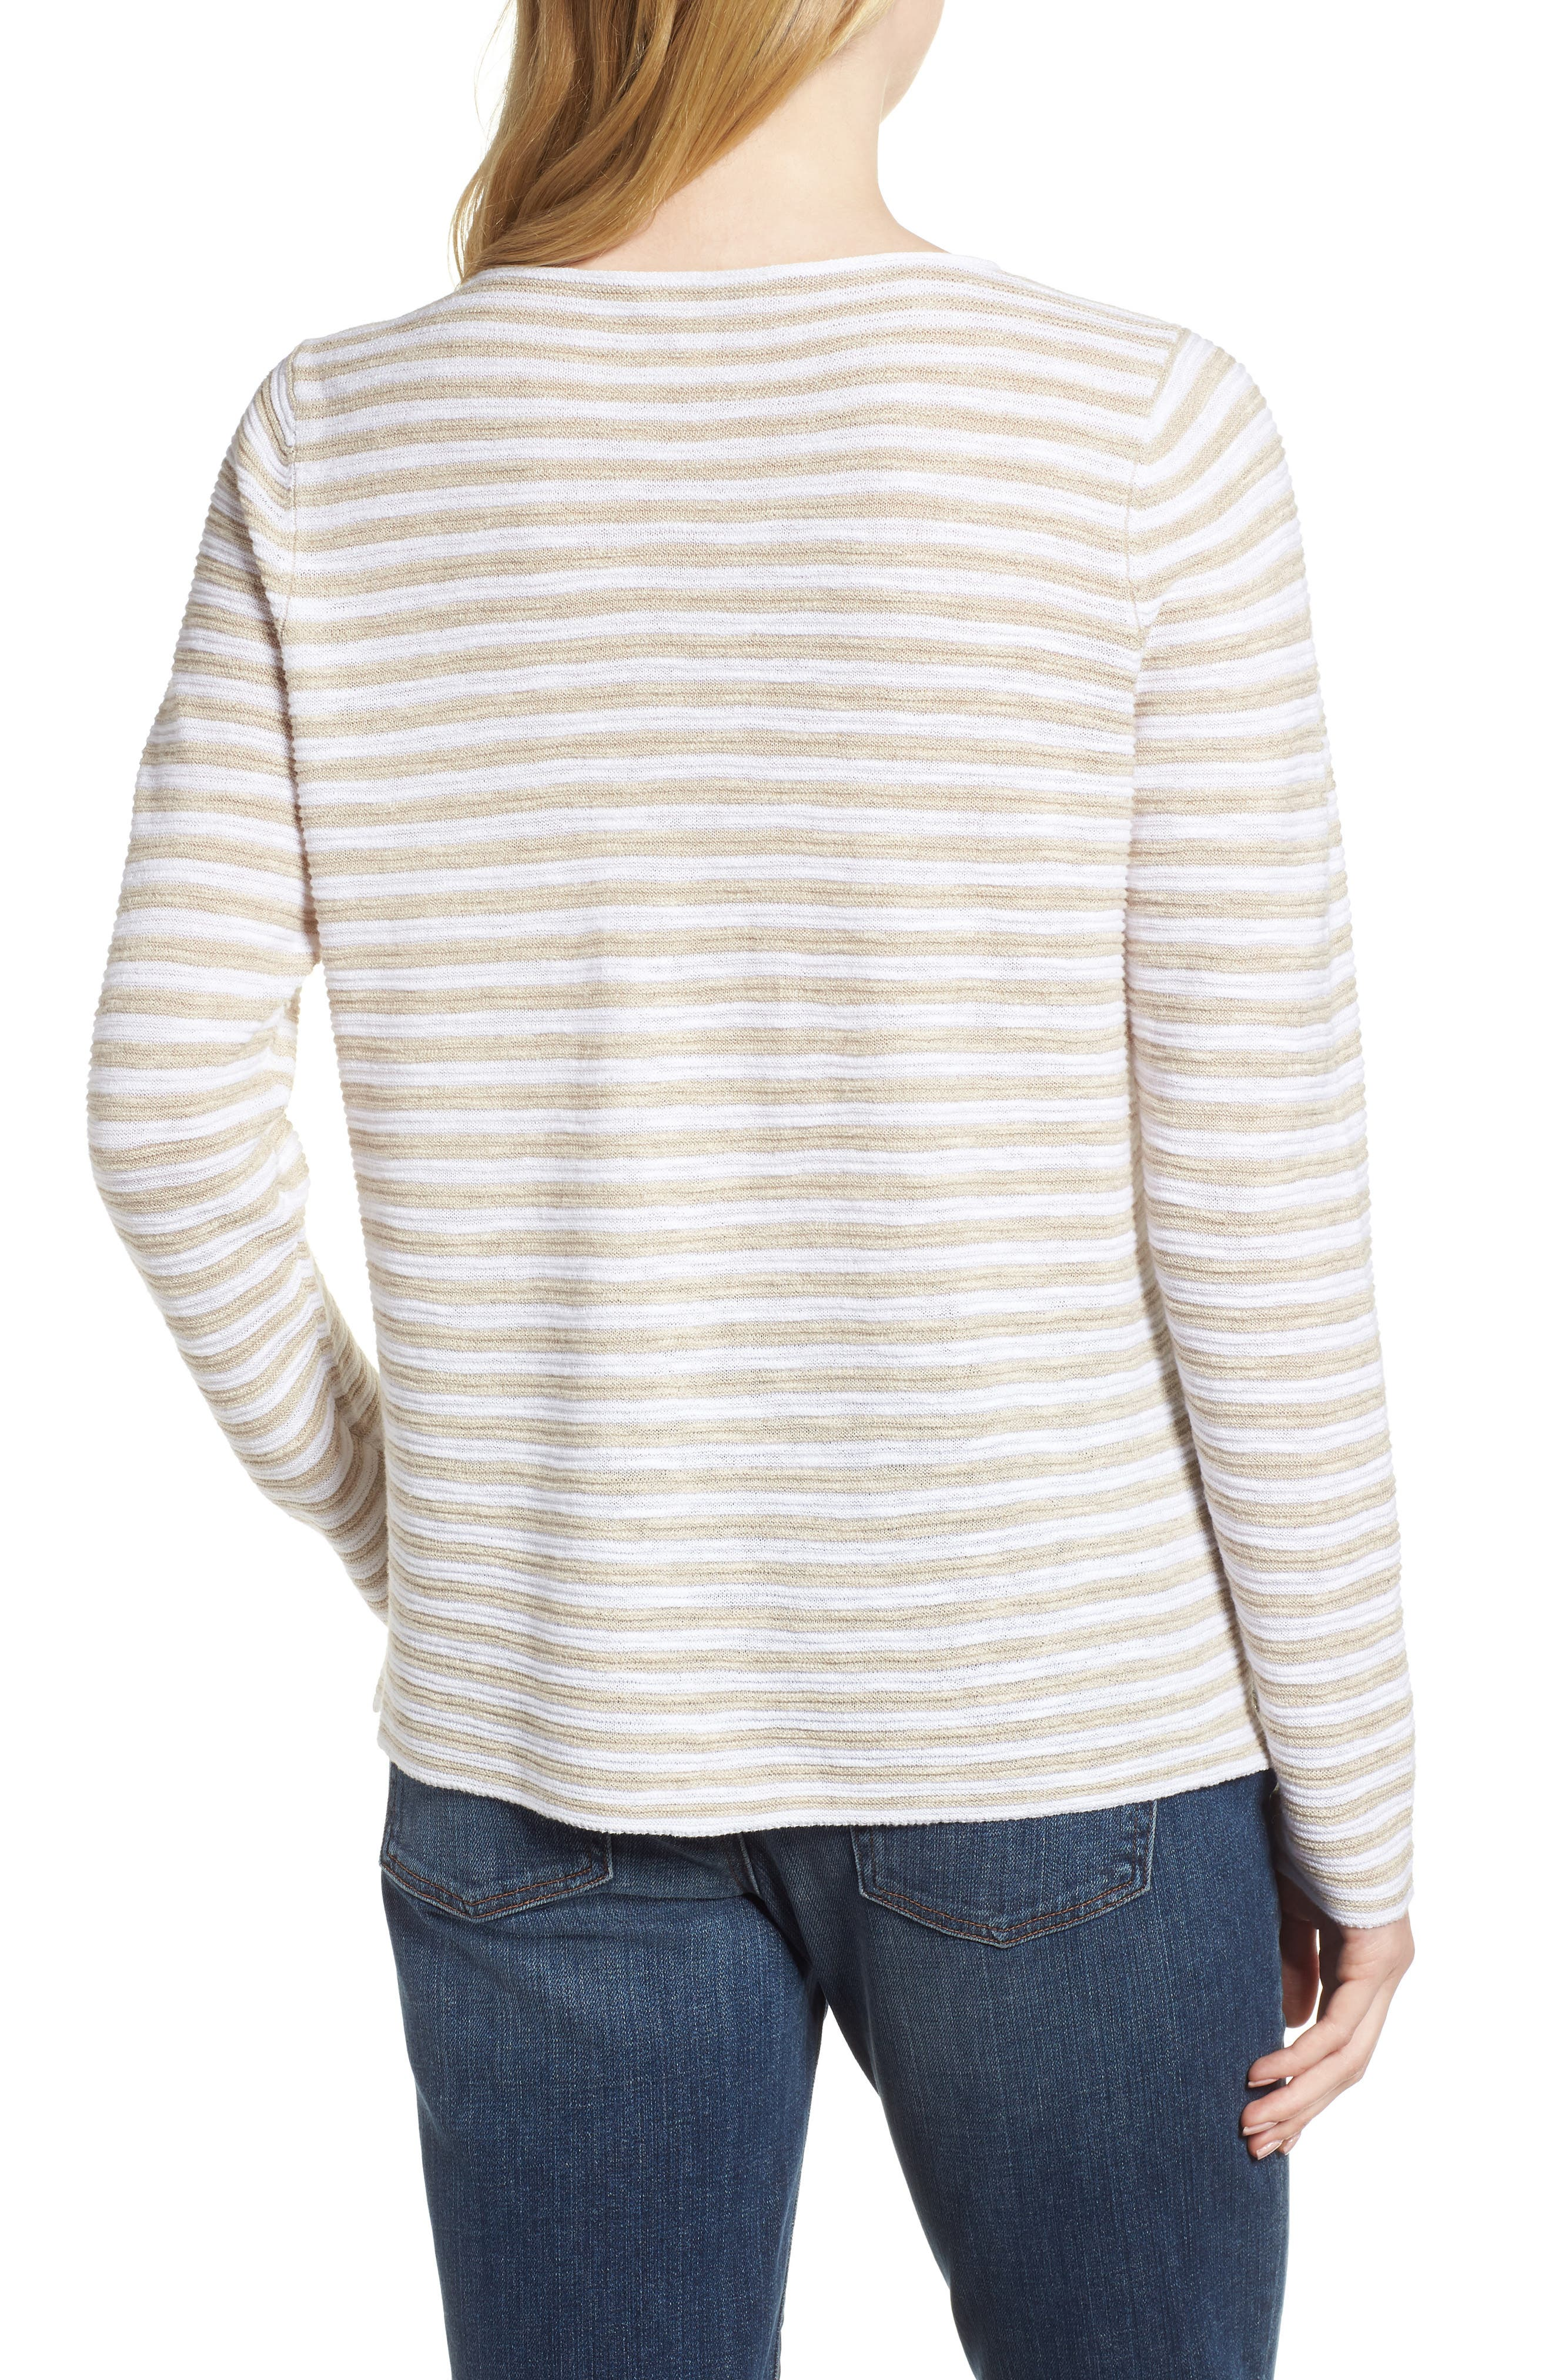 Stripe Organic Linen & Cotton Sweater,                             Alternate thumbnail 2, color,                             White/ Natural